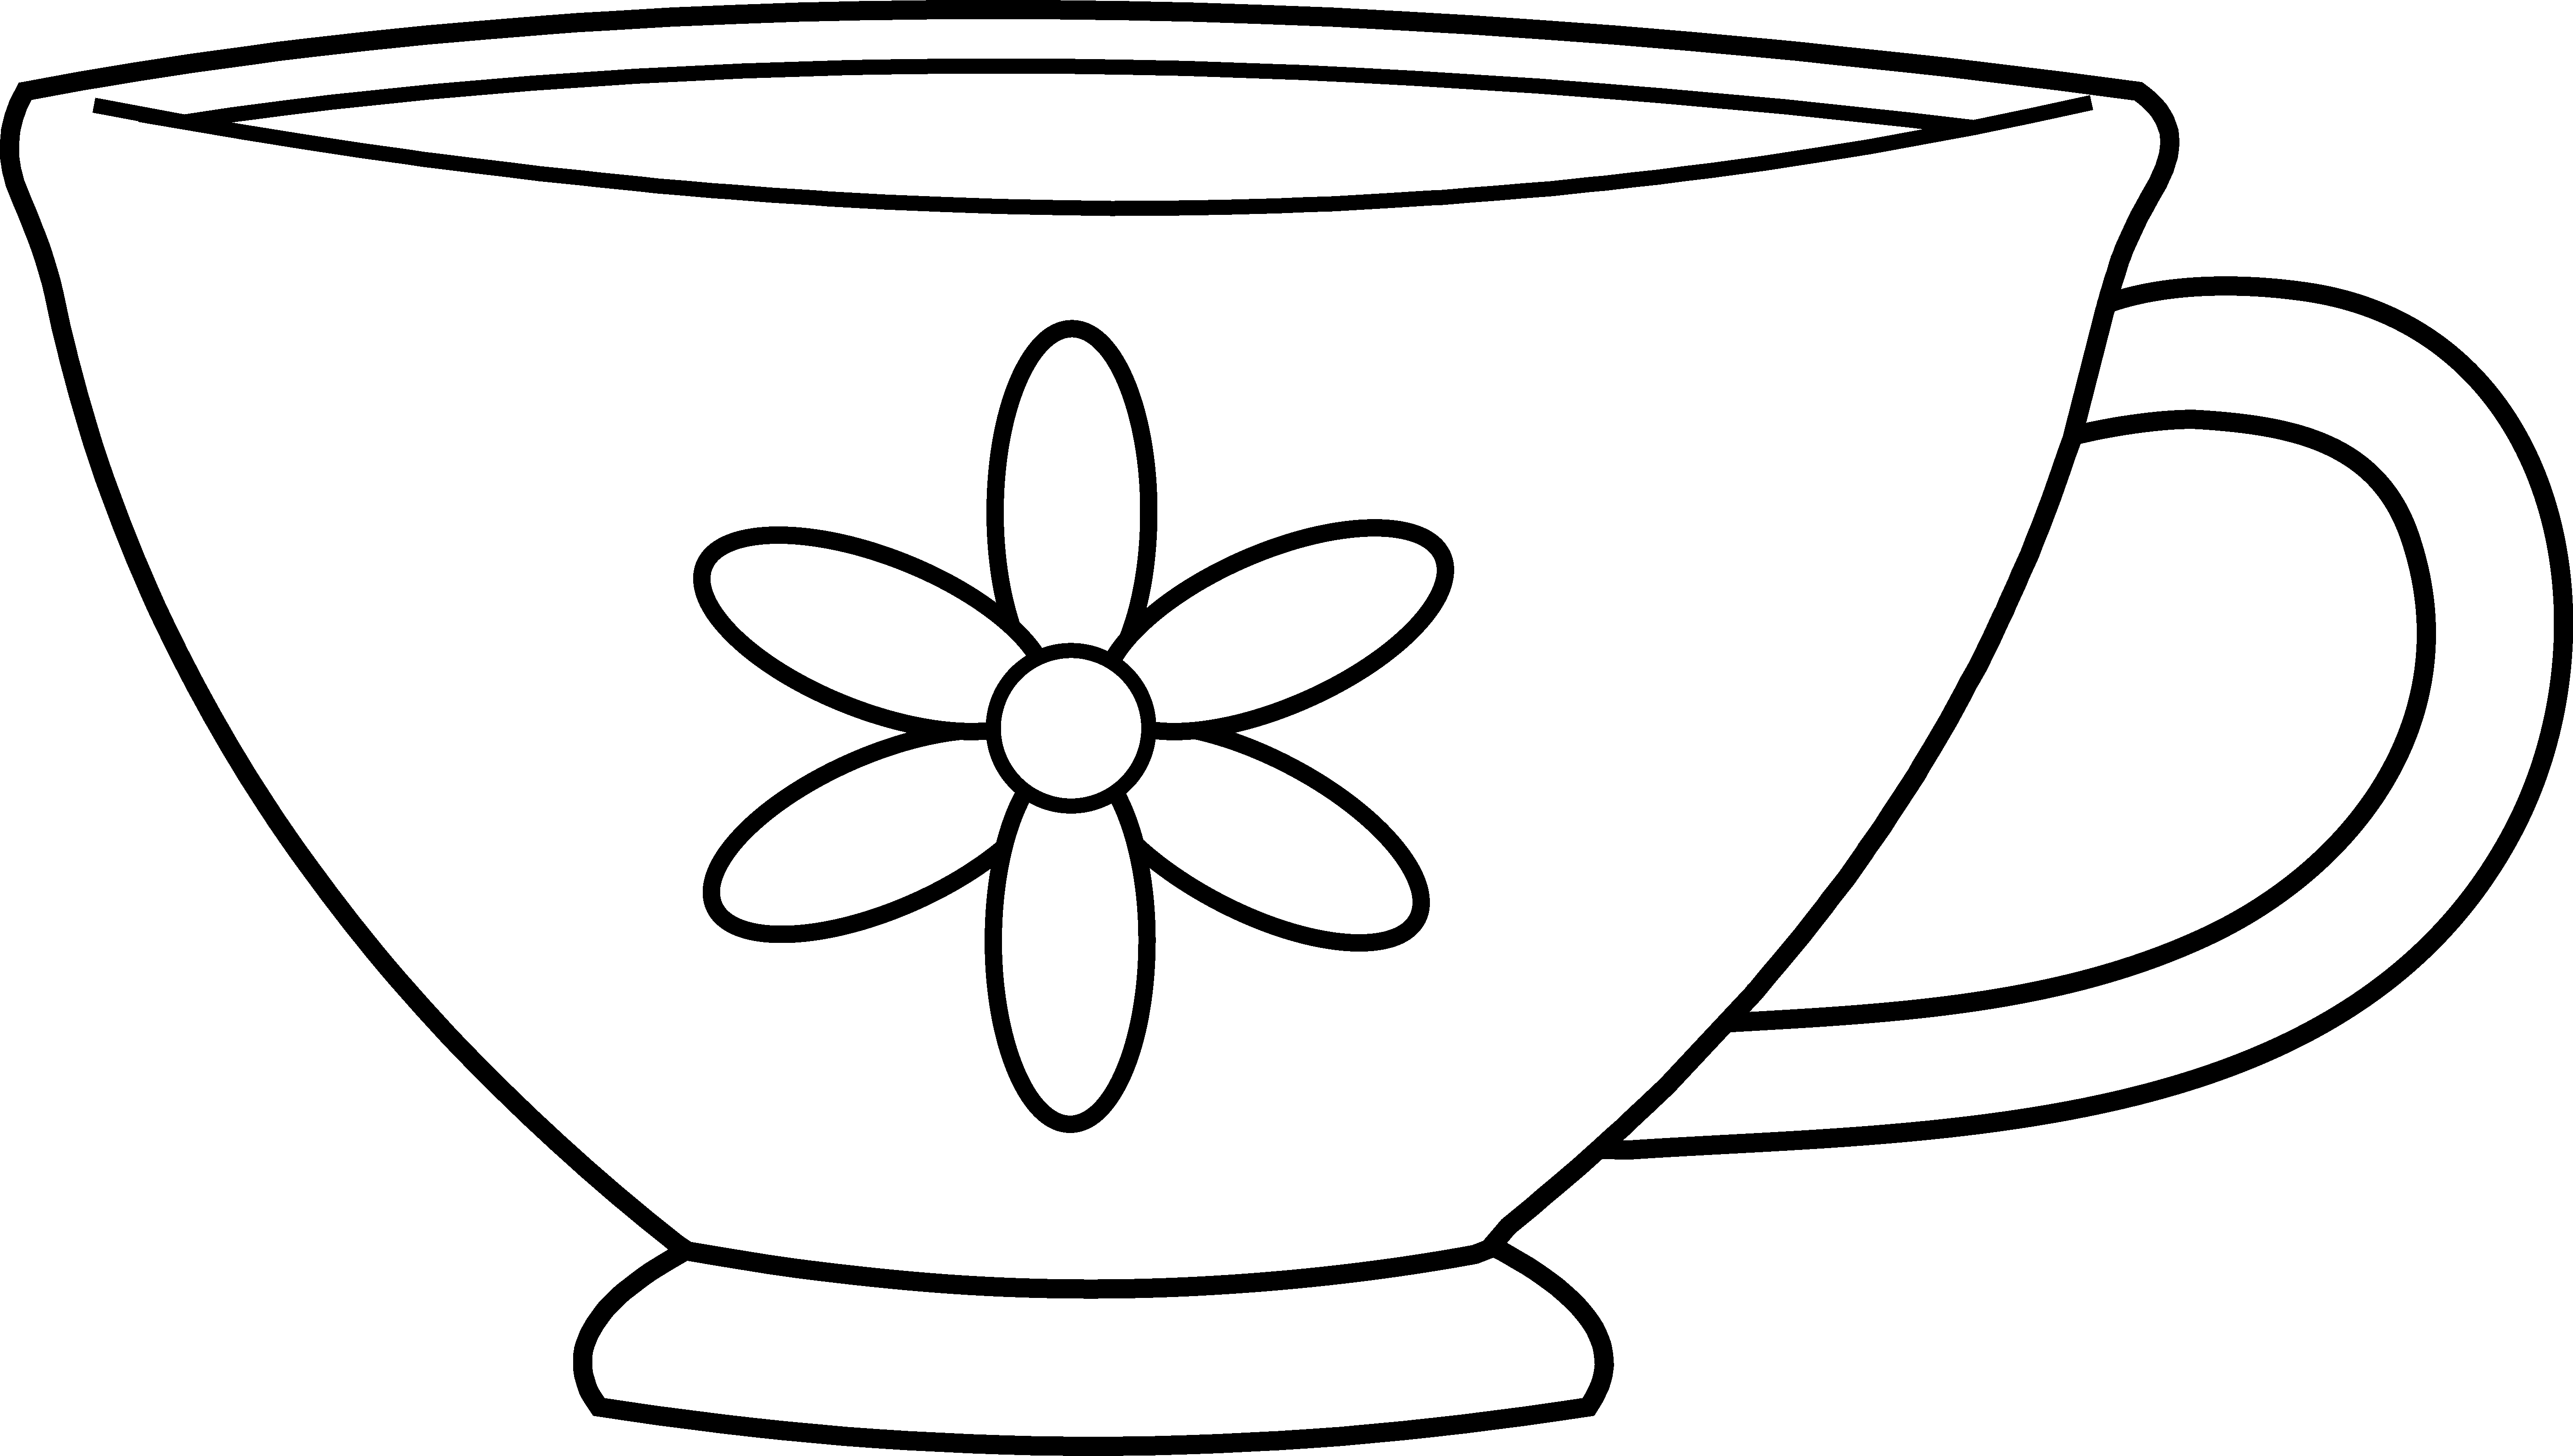 tea cup coloring page my cup overflows tea and coffee coloring cup page tea